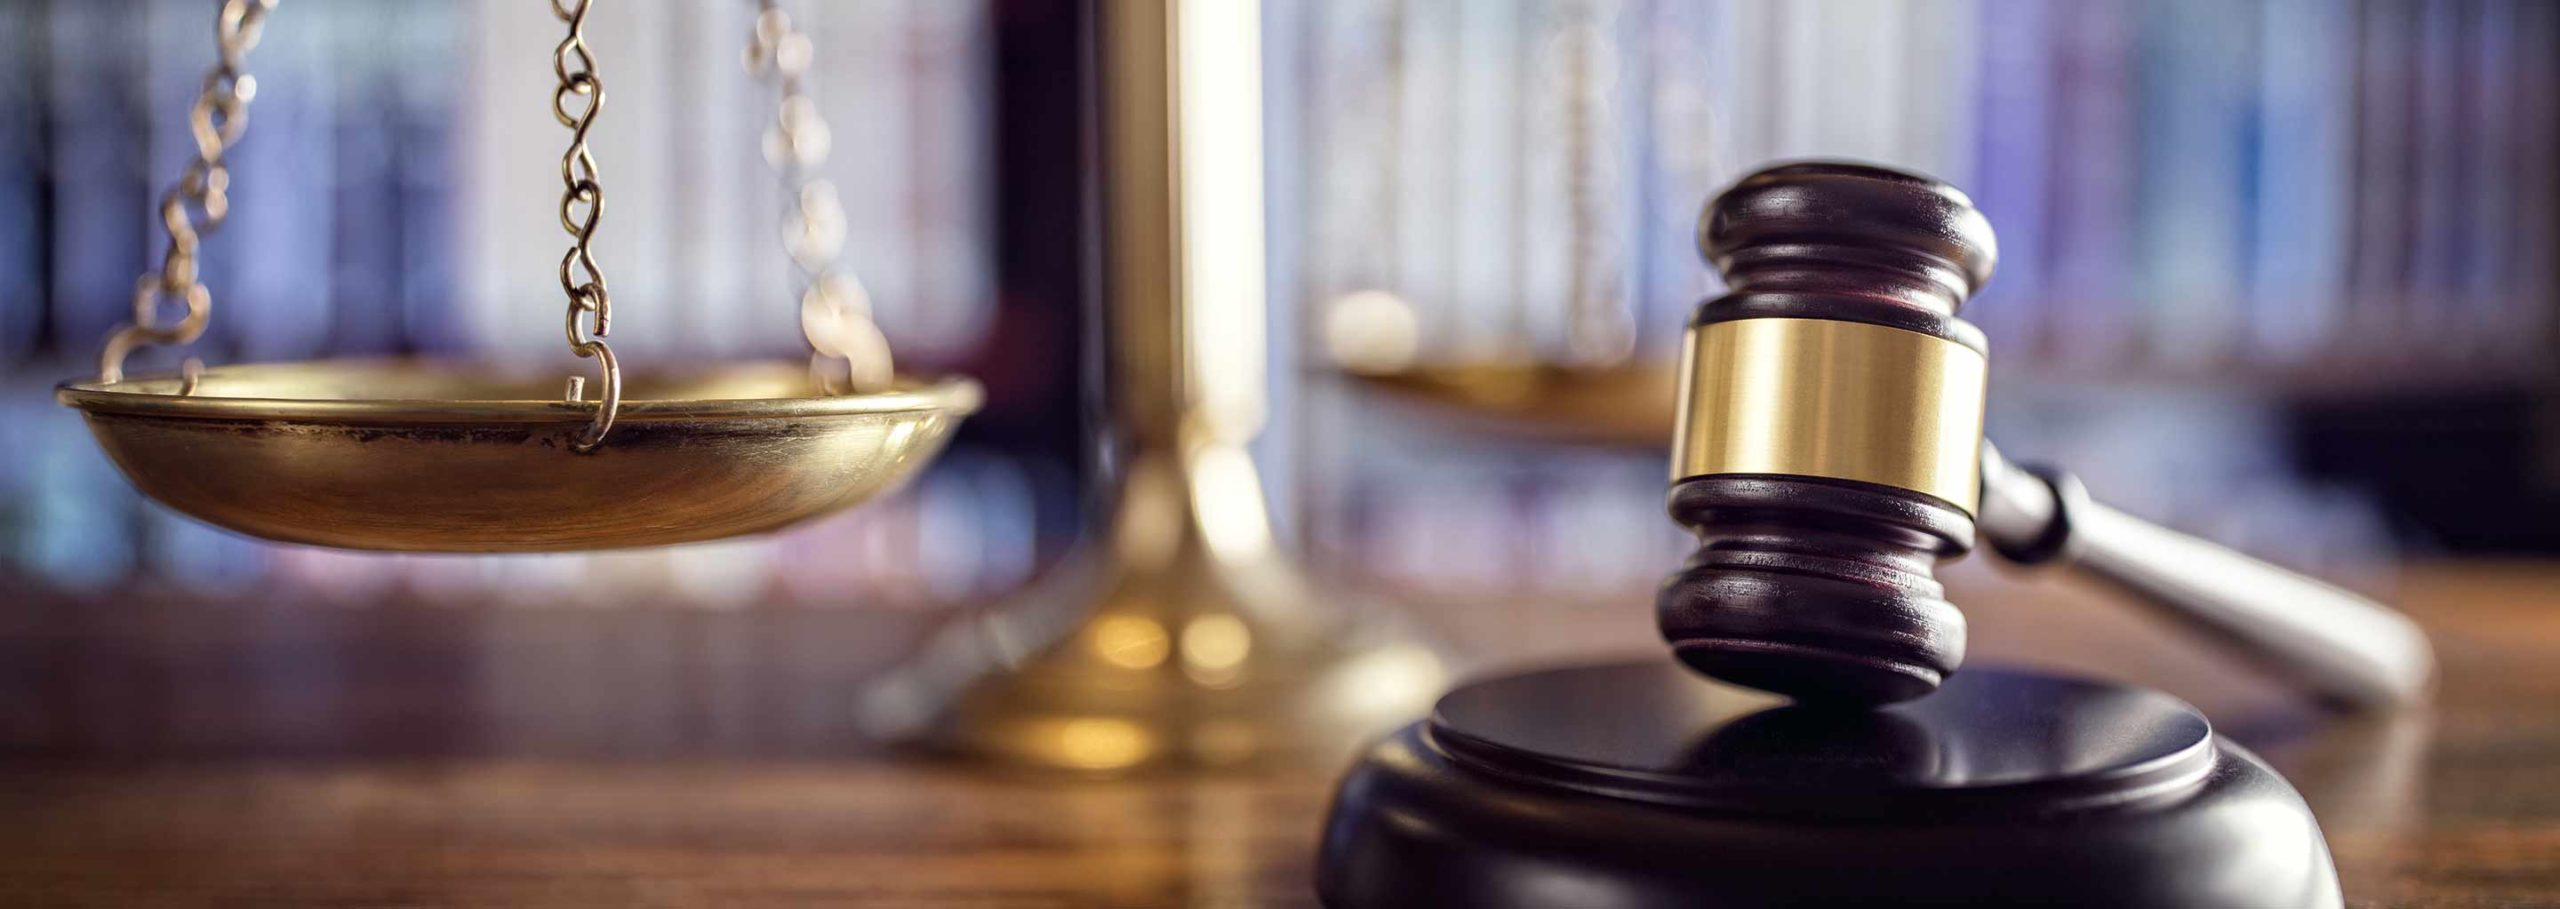 scales of justice & gavel